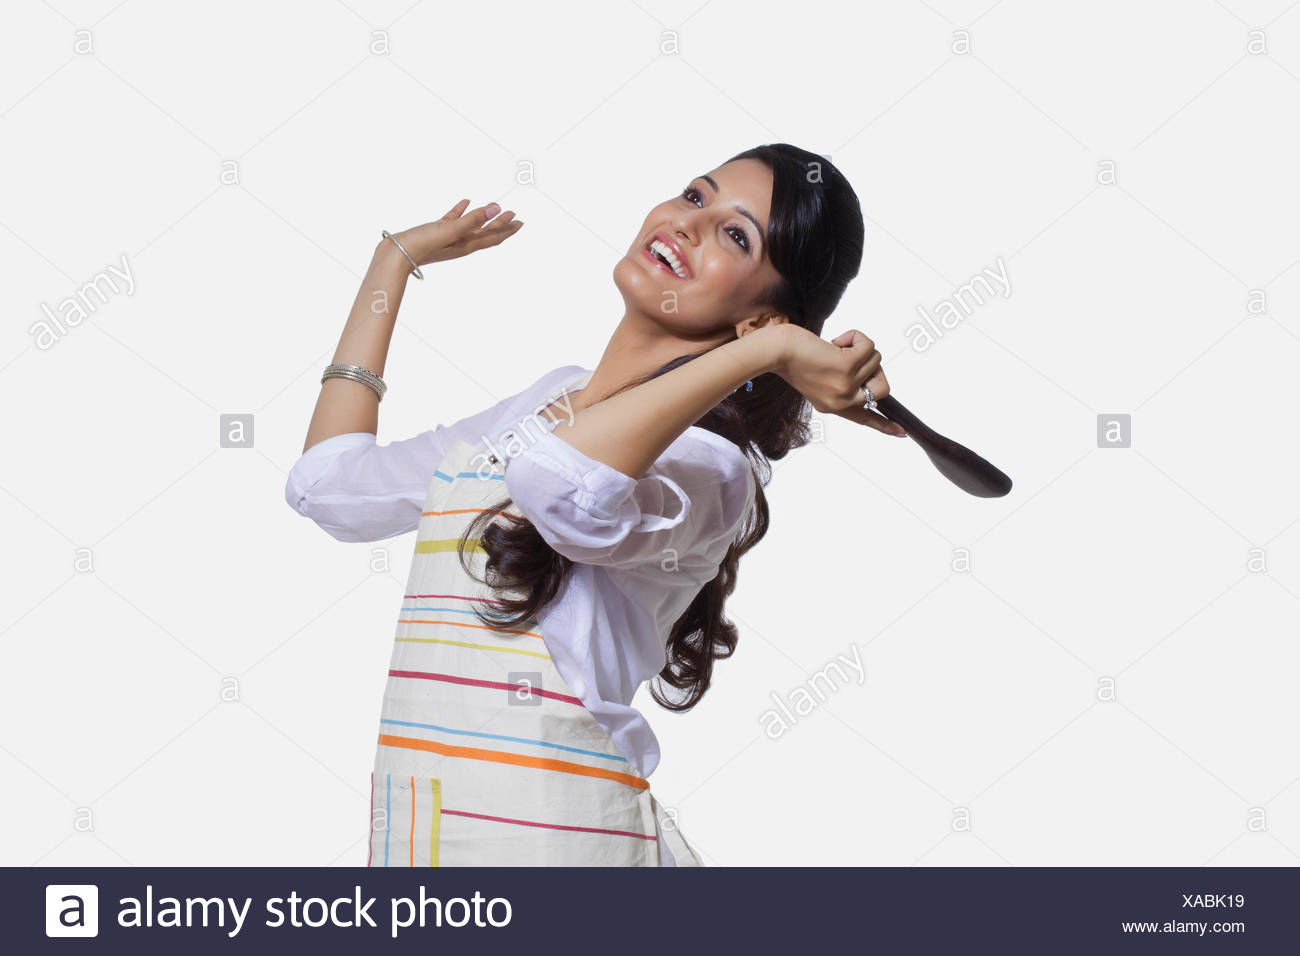 Woman with a cooking utensil rejoicing - Stock Image